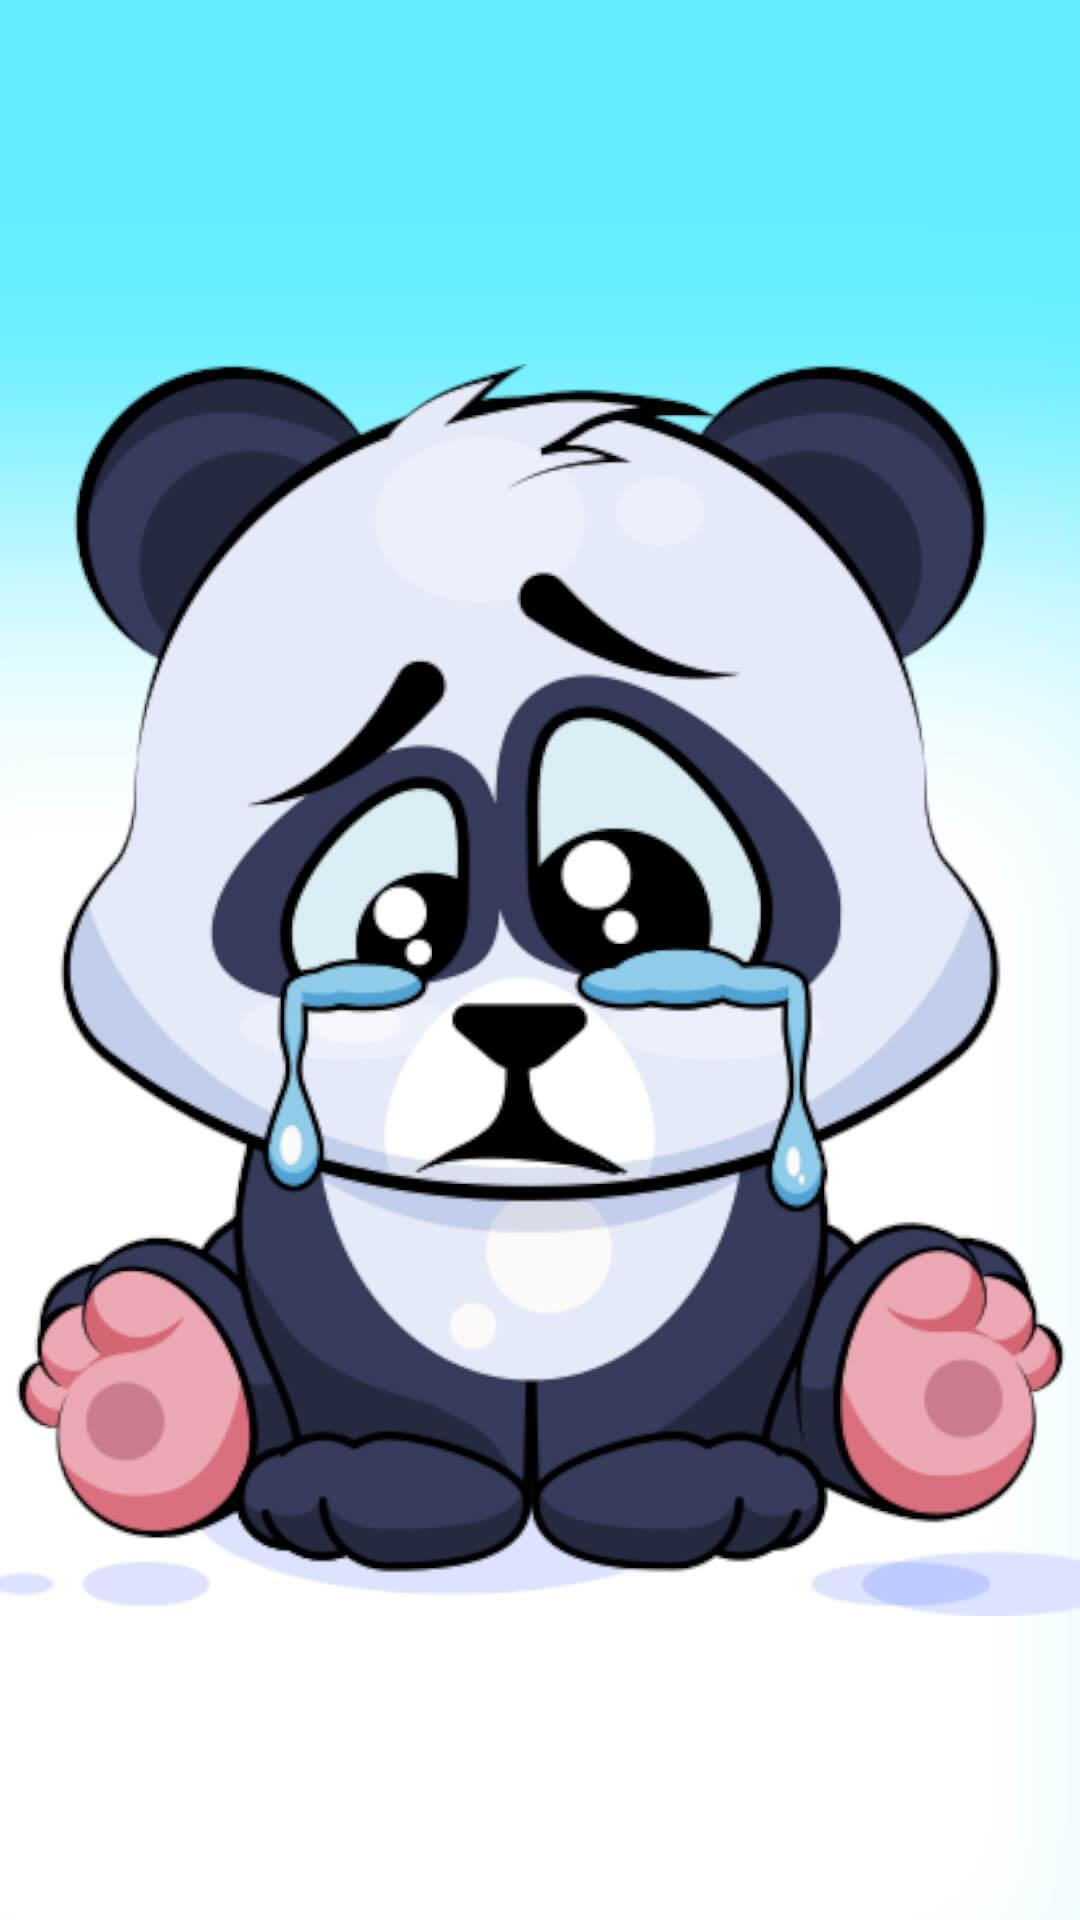 Cute Panda Sticker Pack For Whatsapp Wastickerapp For Android